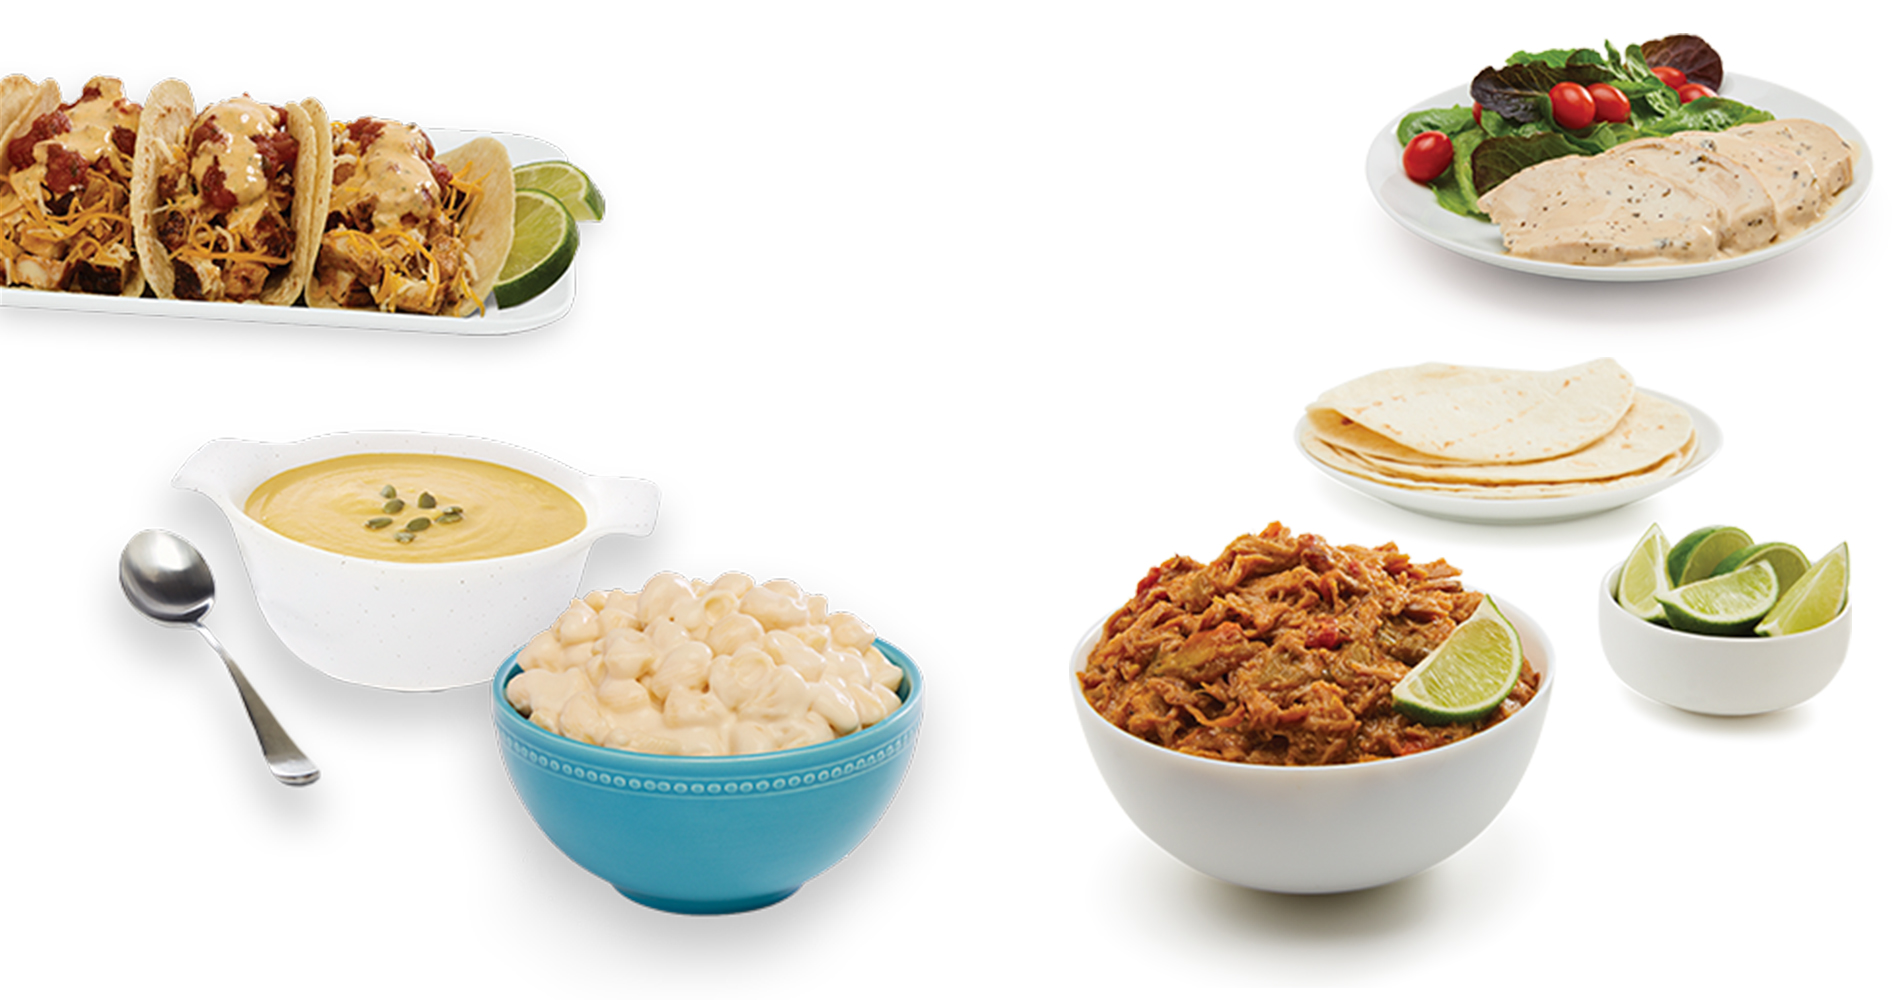 chicken tacos, deli soups, mac and cheese, and bbq pulled portk